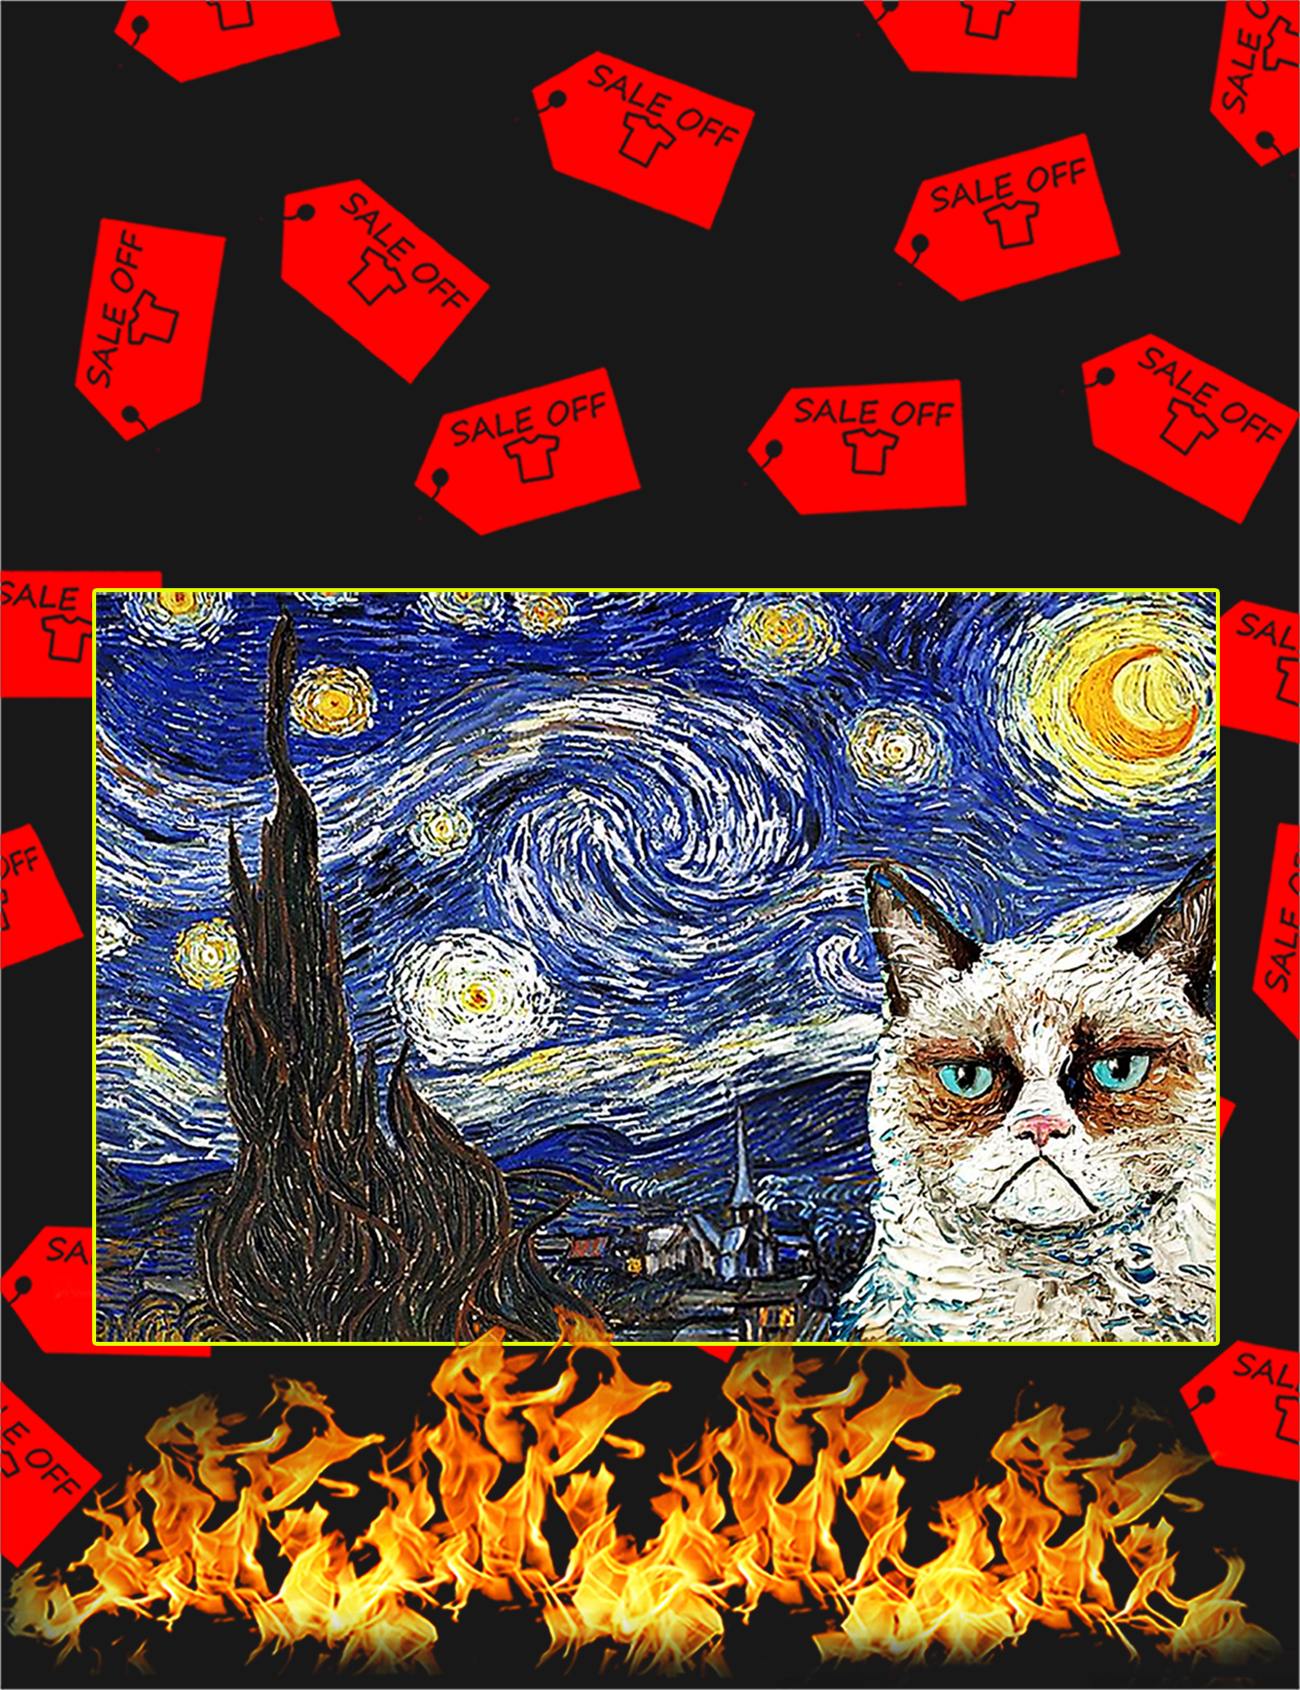 Grumpy cat starry night poster - A1